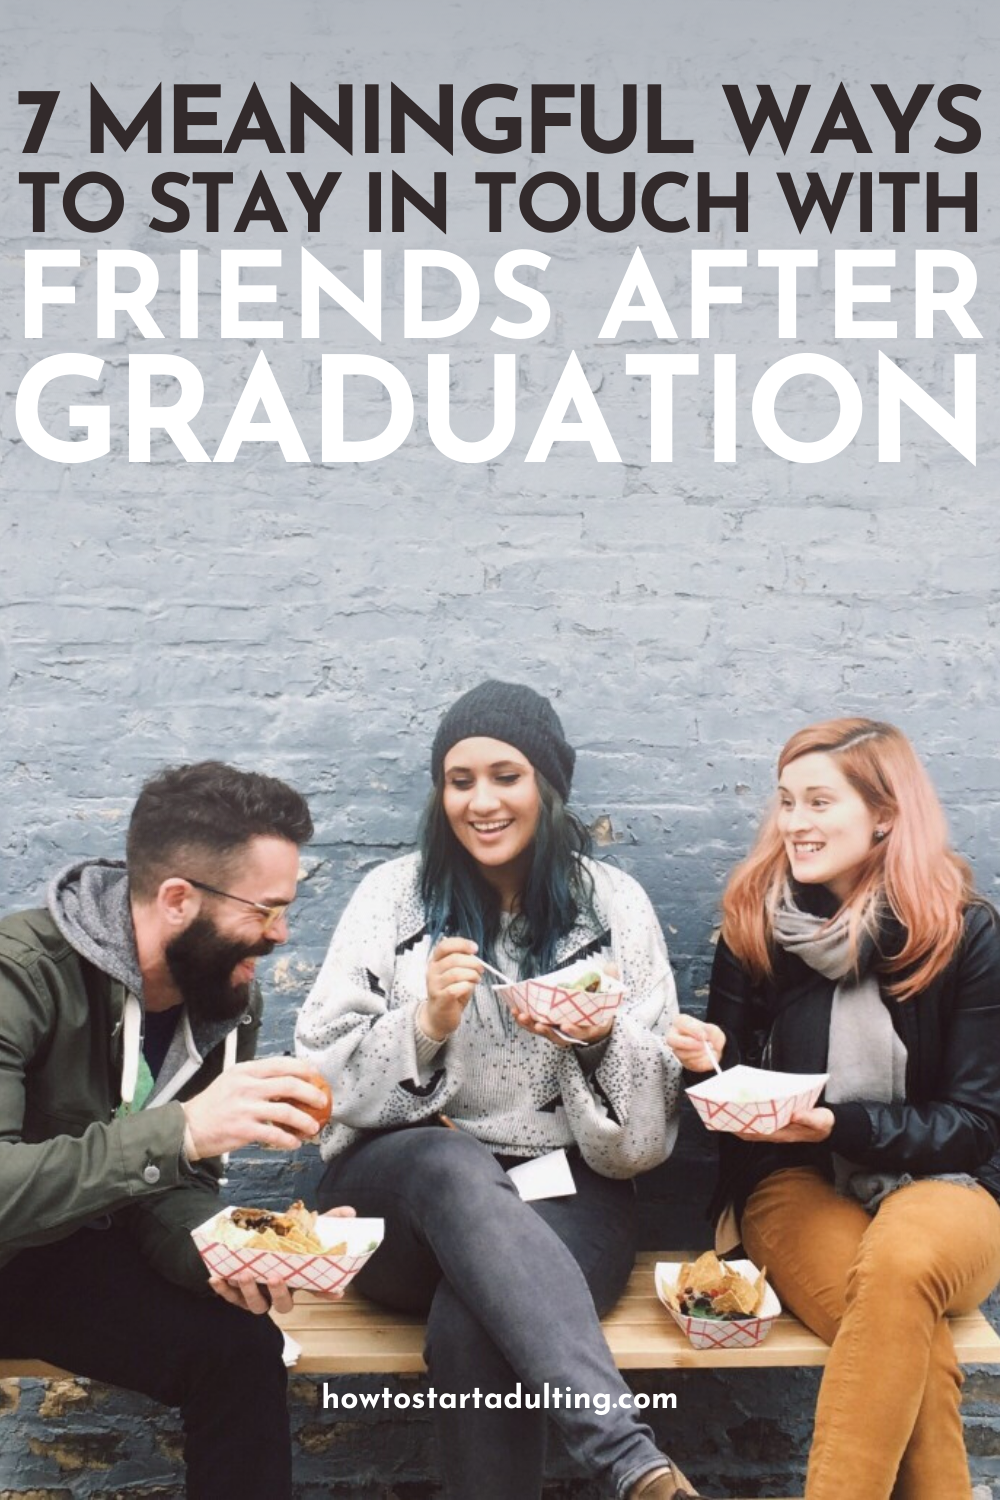 Meaningful Ways To Stay In Touch With Friends After College Graduation, maintaining friends as an adult #college #collegelife #collegegraduation #collegegrad #adulting #friendships